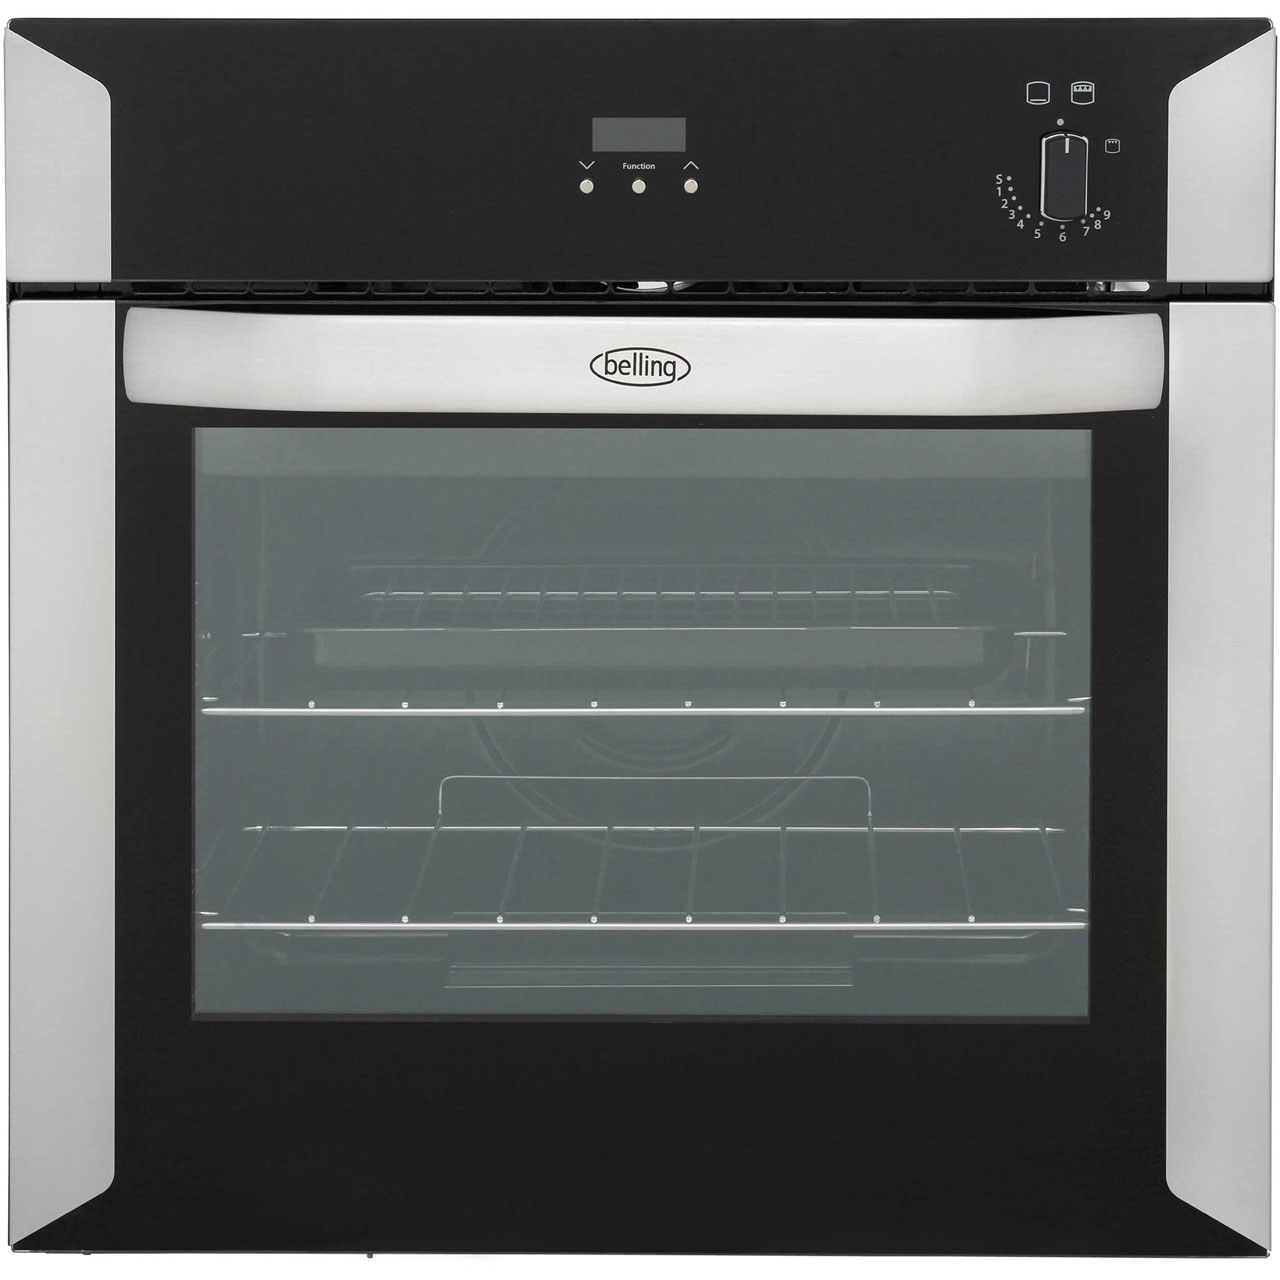 bi60g_ss belling built in gas single oven 48l ao combelling bi60g built in gas single oven stainless steel a rated bi60g_ss